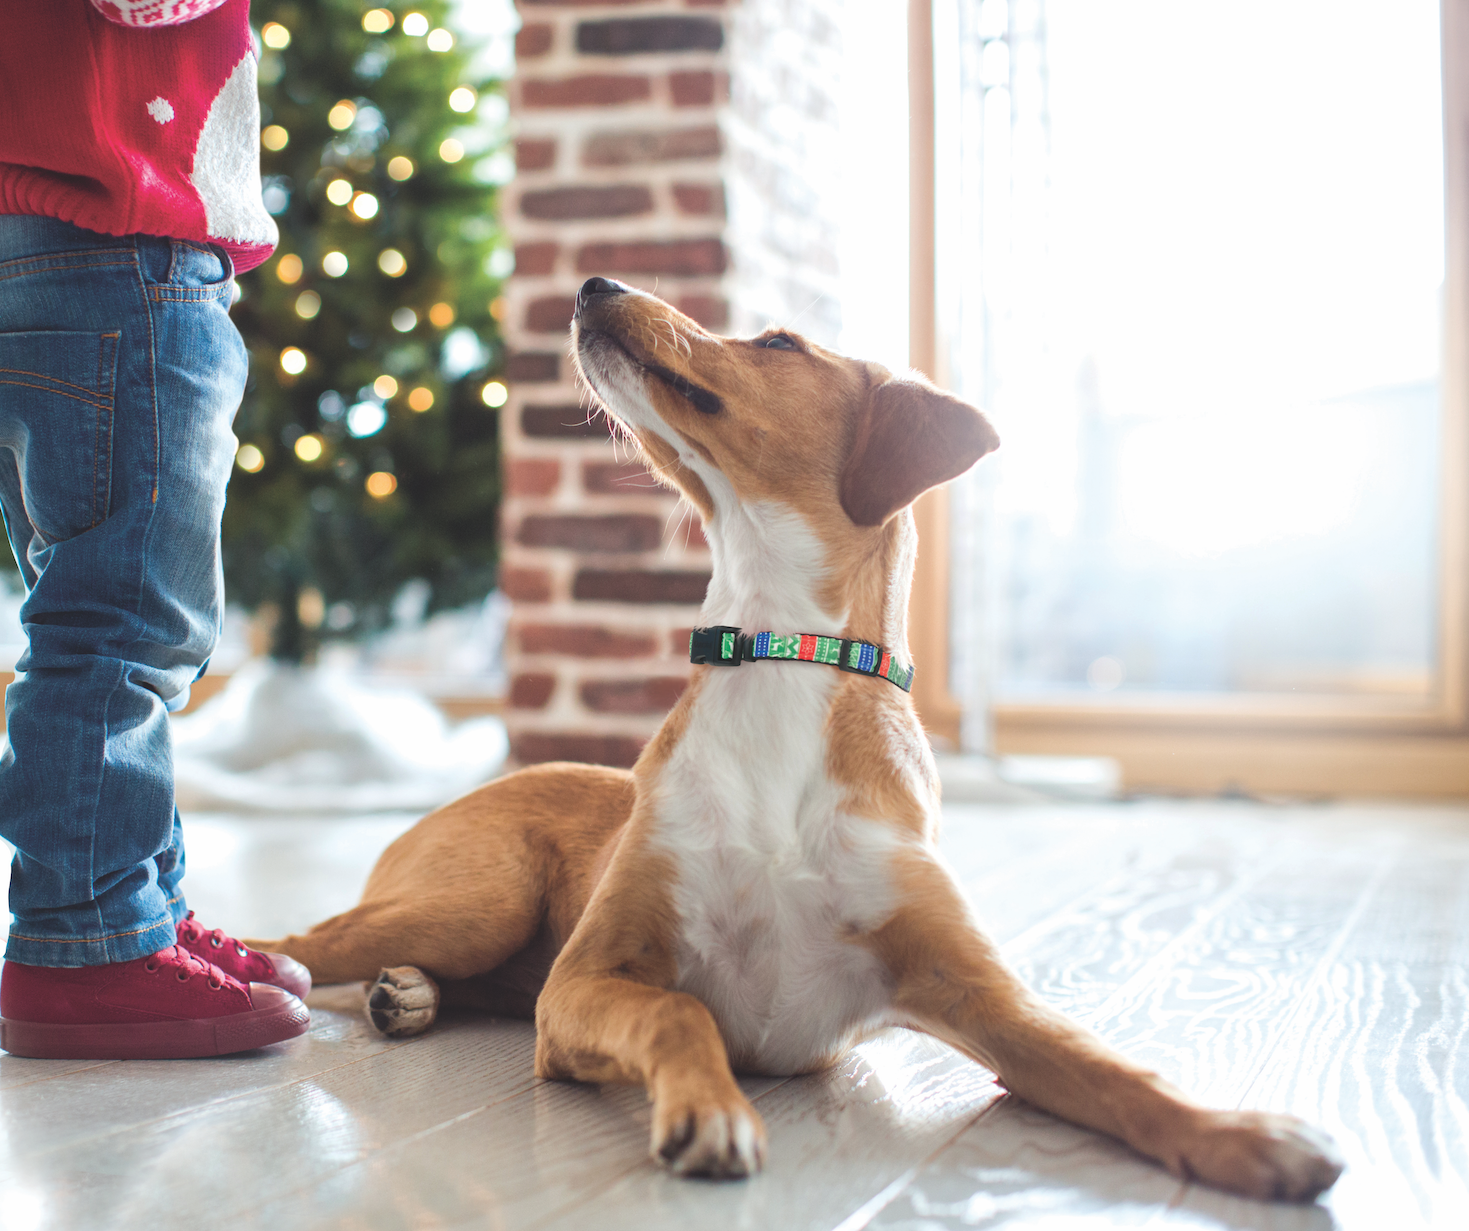 Get Your Four Legged Friends A Christmas Look With Our Celebrations Line From Coastal Pet Find All Four Fun Patterns At Coastal Four Legged Cool Patterns Pets